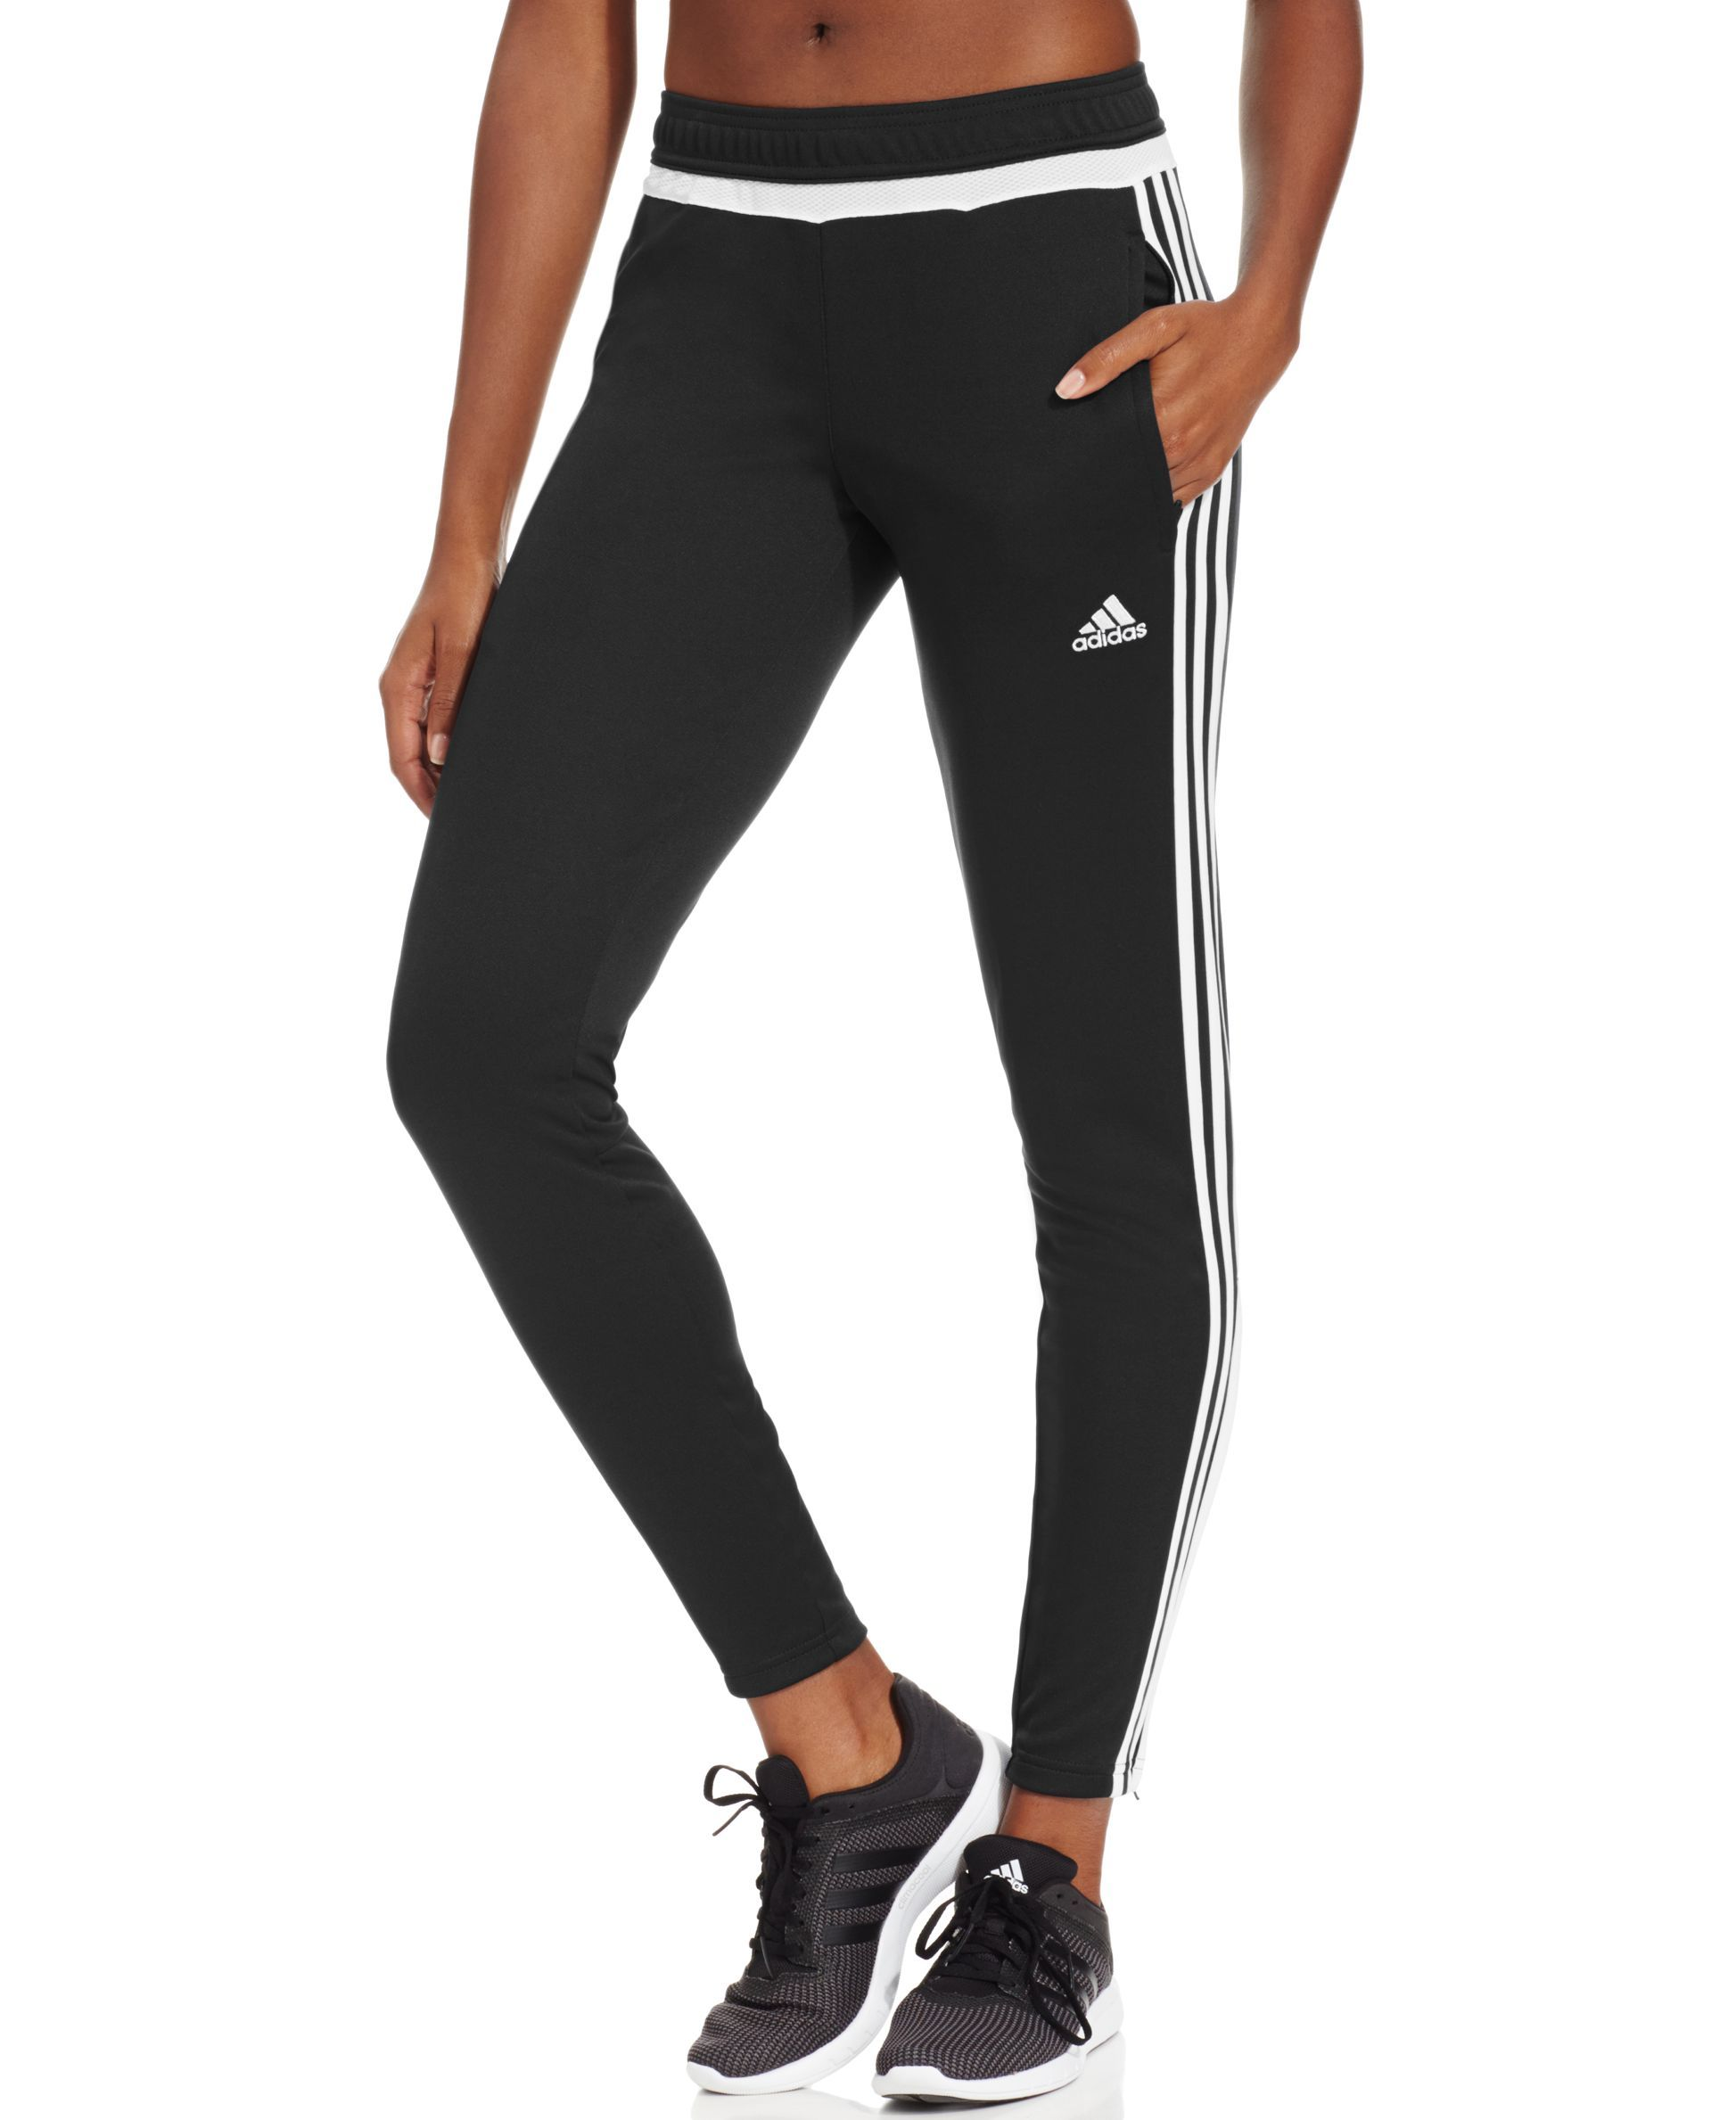 The slim, tapered fit of the Adidas Tiro 15 Pant lets you ...